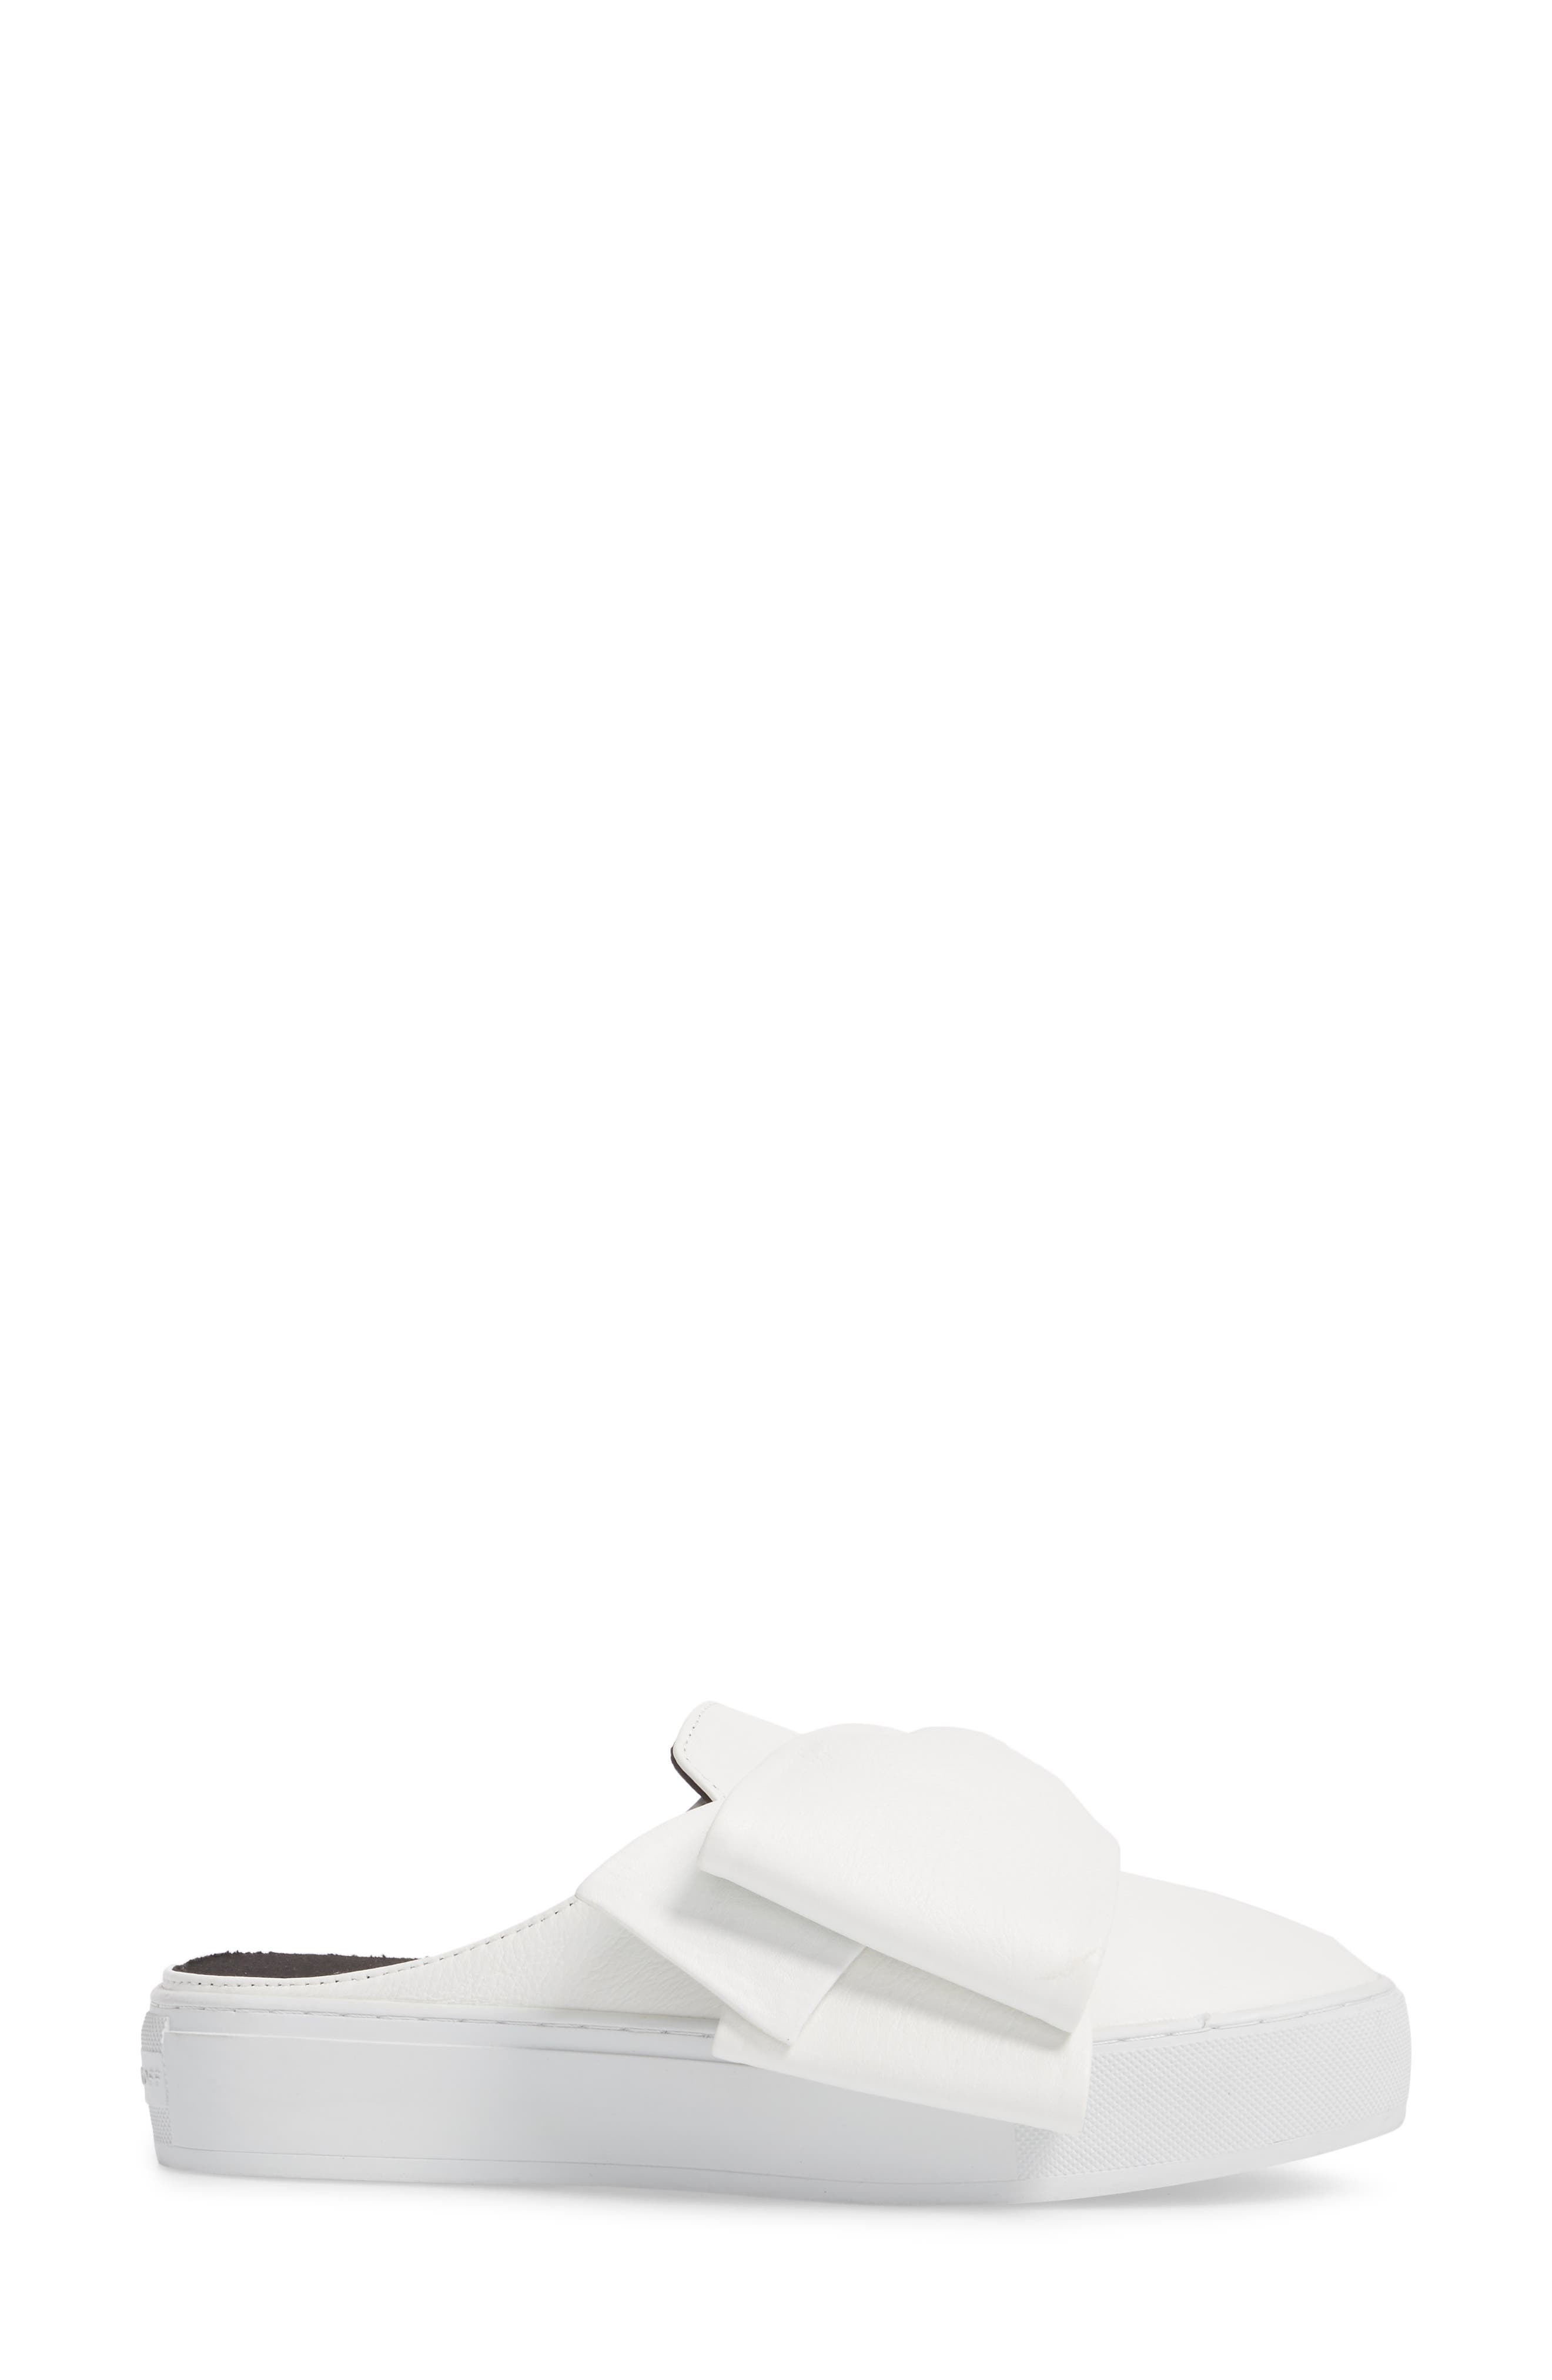 Alternate Image 3  - Rebecca Minkoff Neva Sneaker Mule (Women)